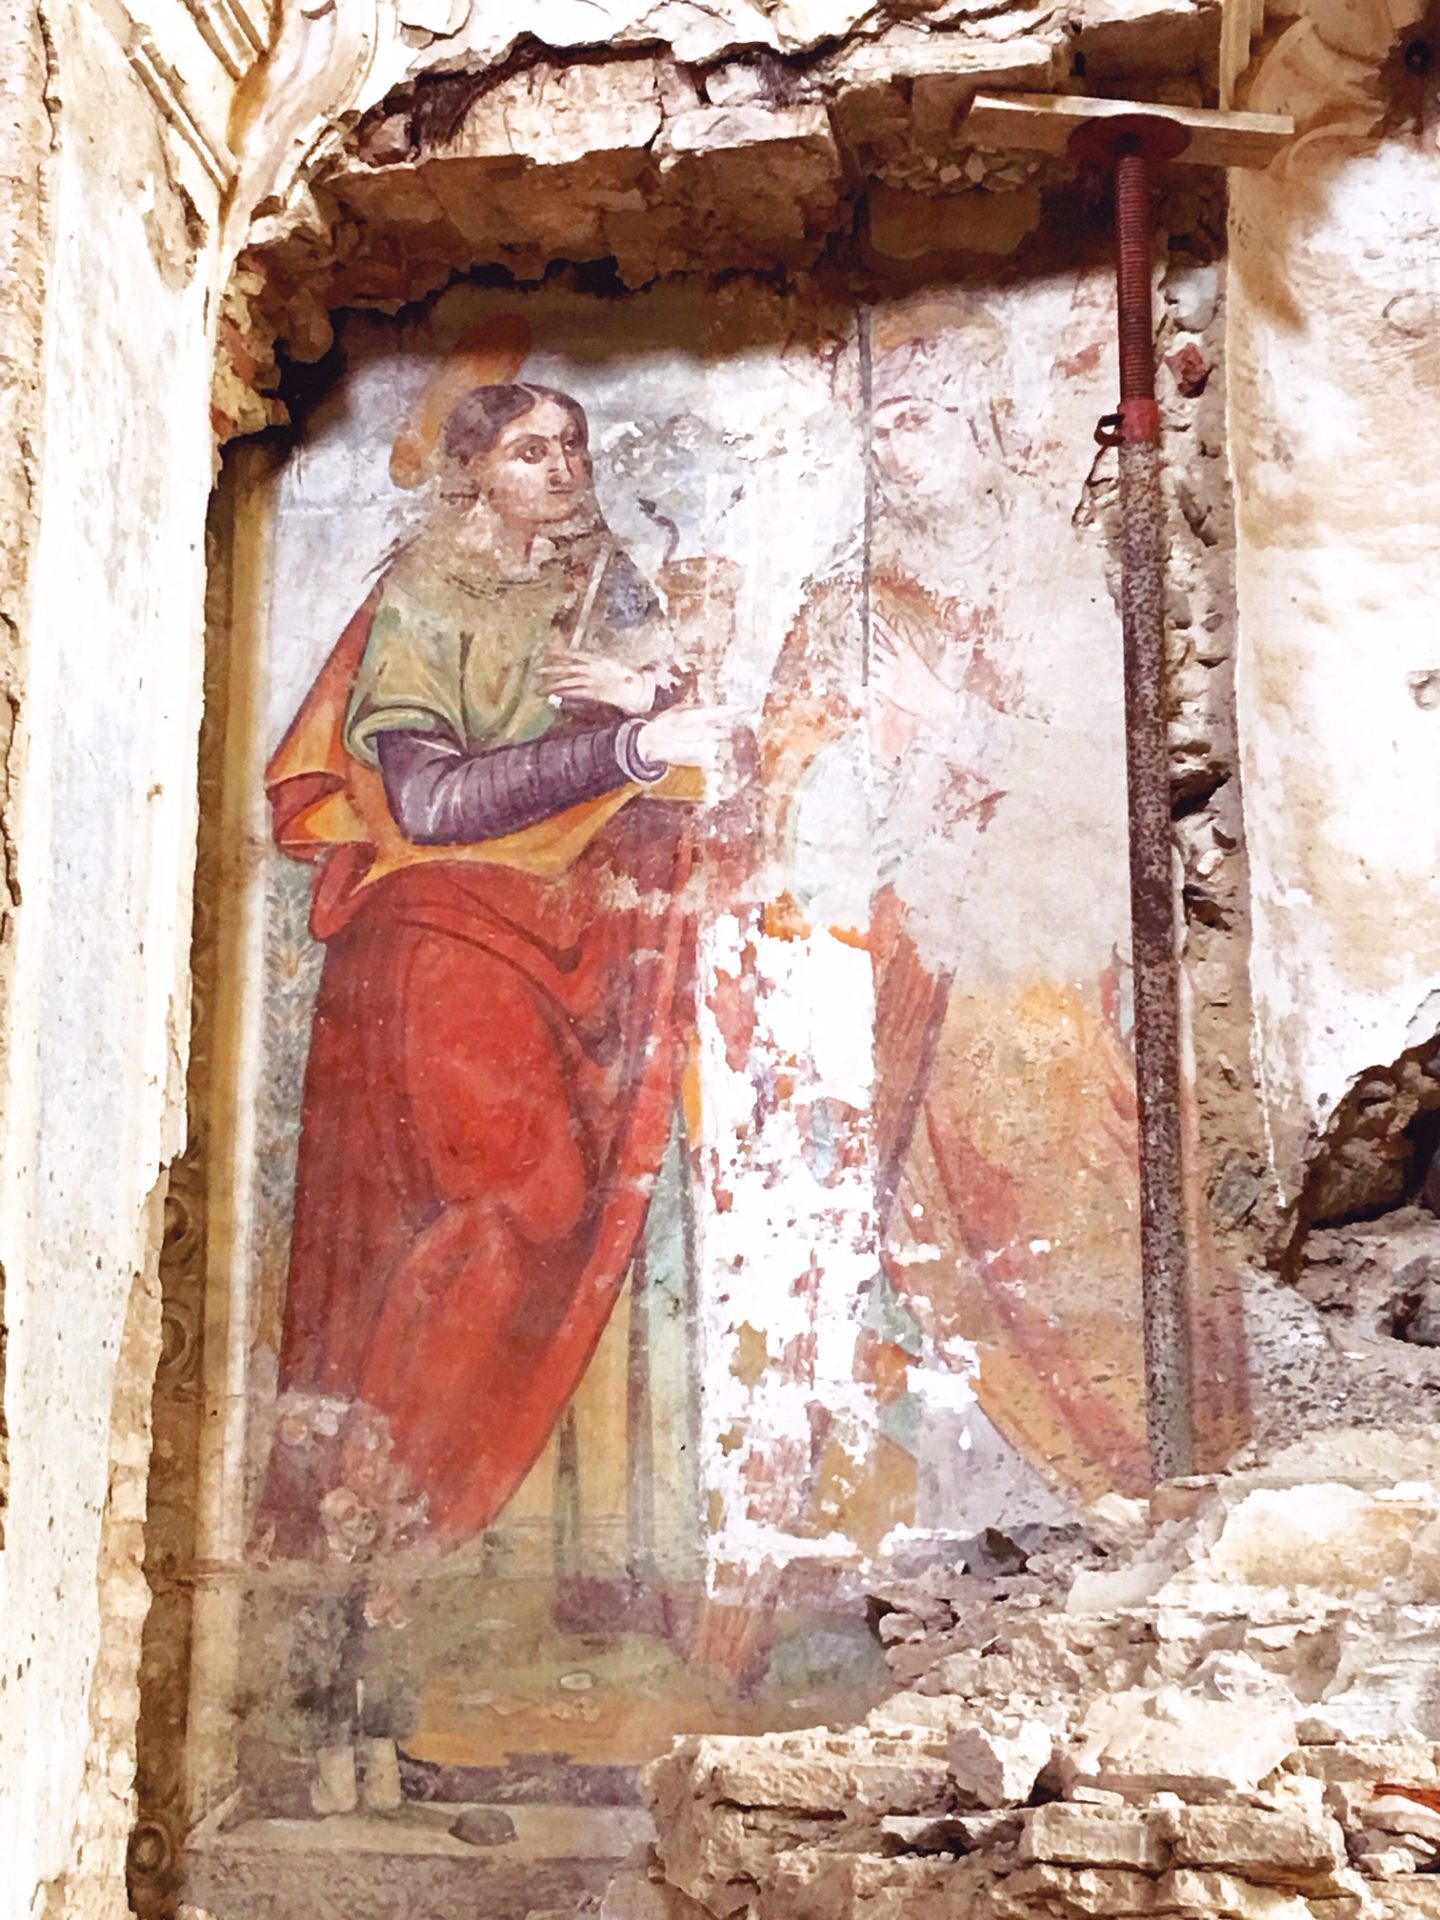 byzantine art in the Convento San Francesco, and abandoned chhurch in Tursi, basilicata, Italy